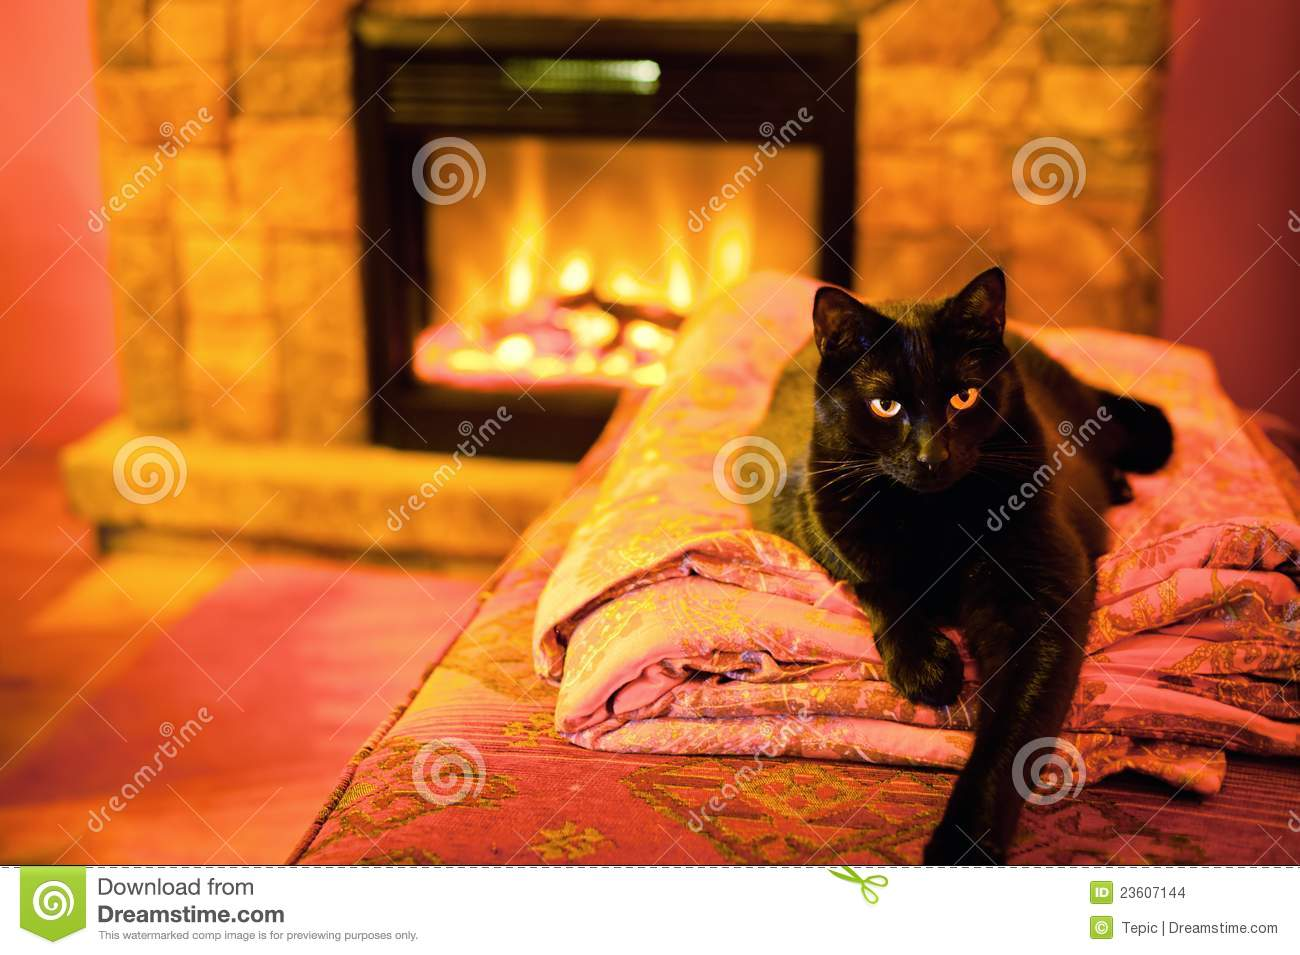 Cat Fireplace Stock Photos, Images, & Pictures - 426 Images